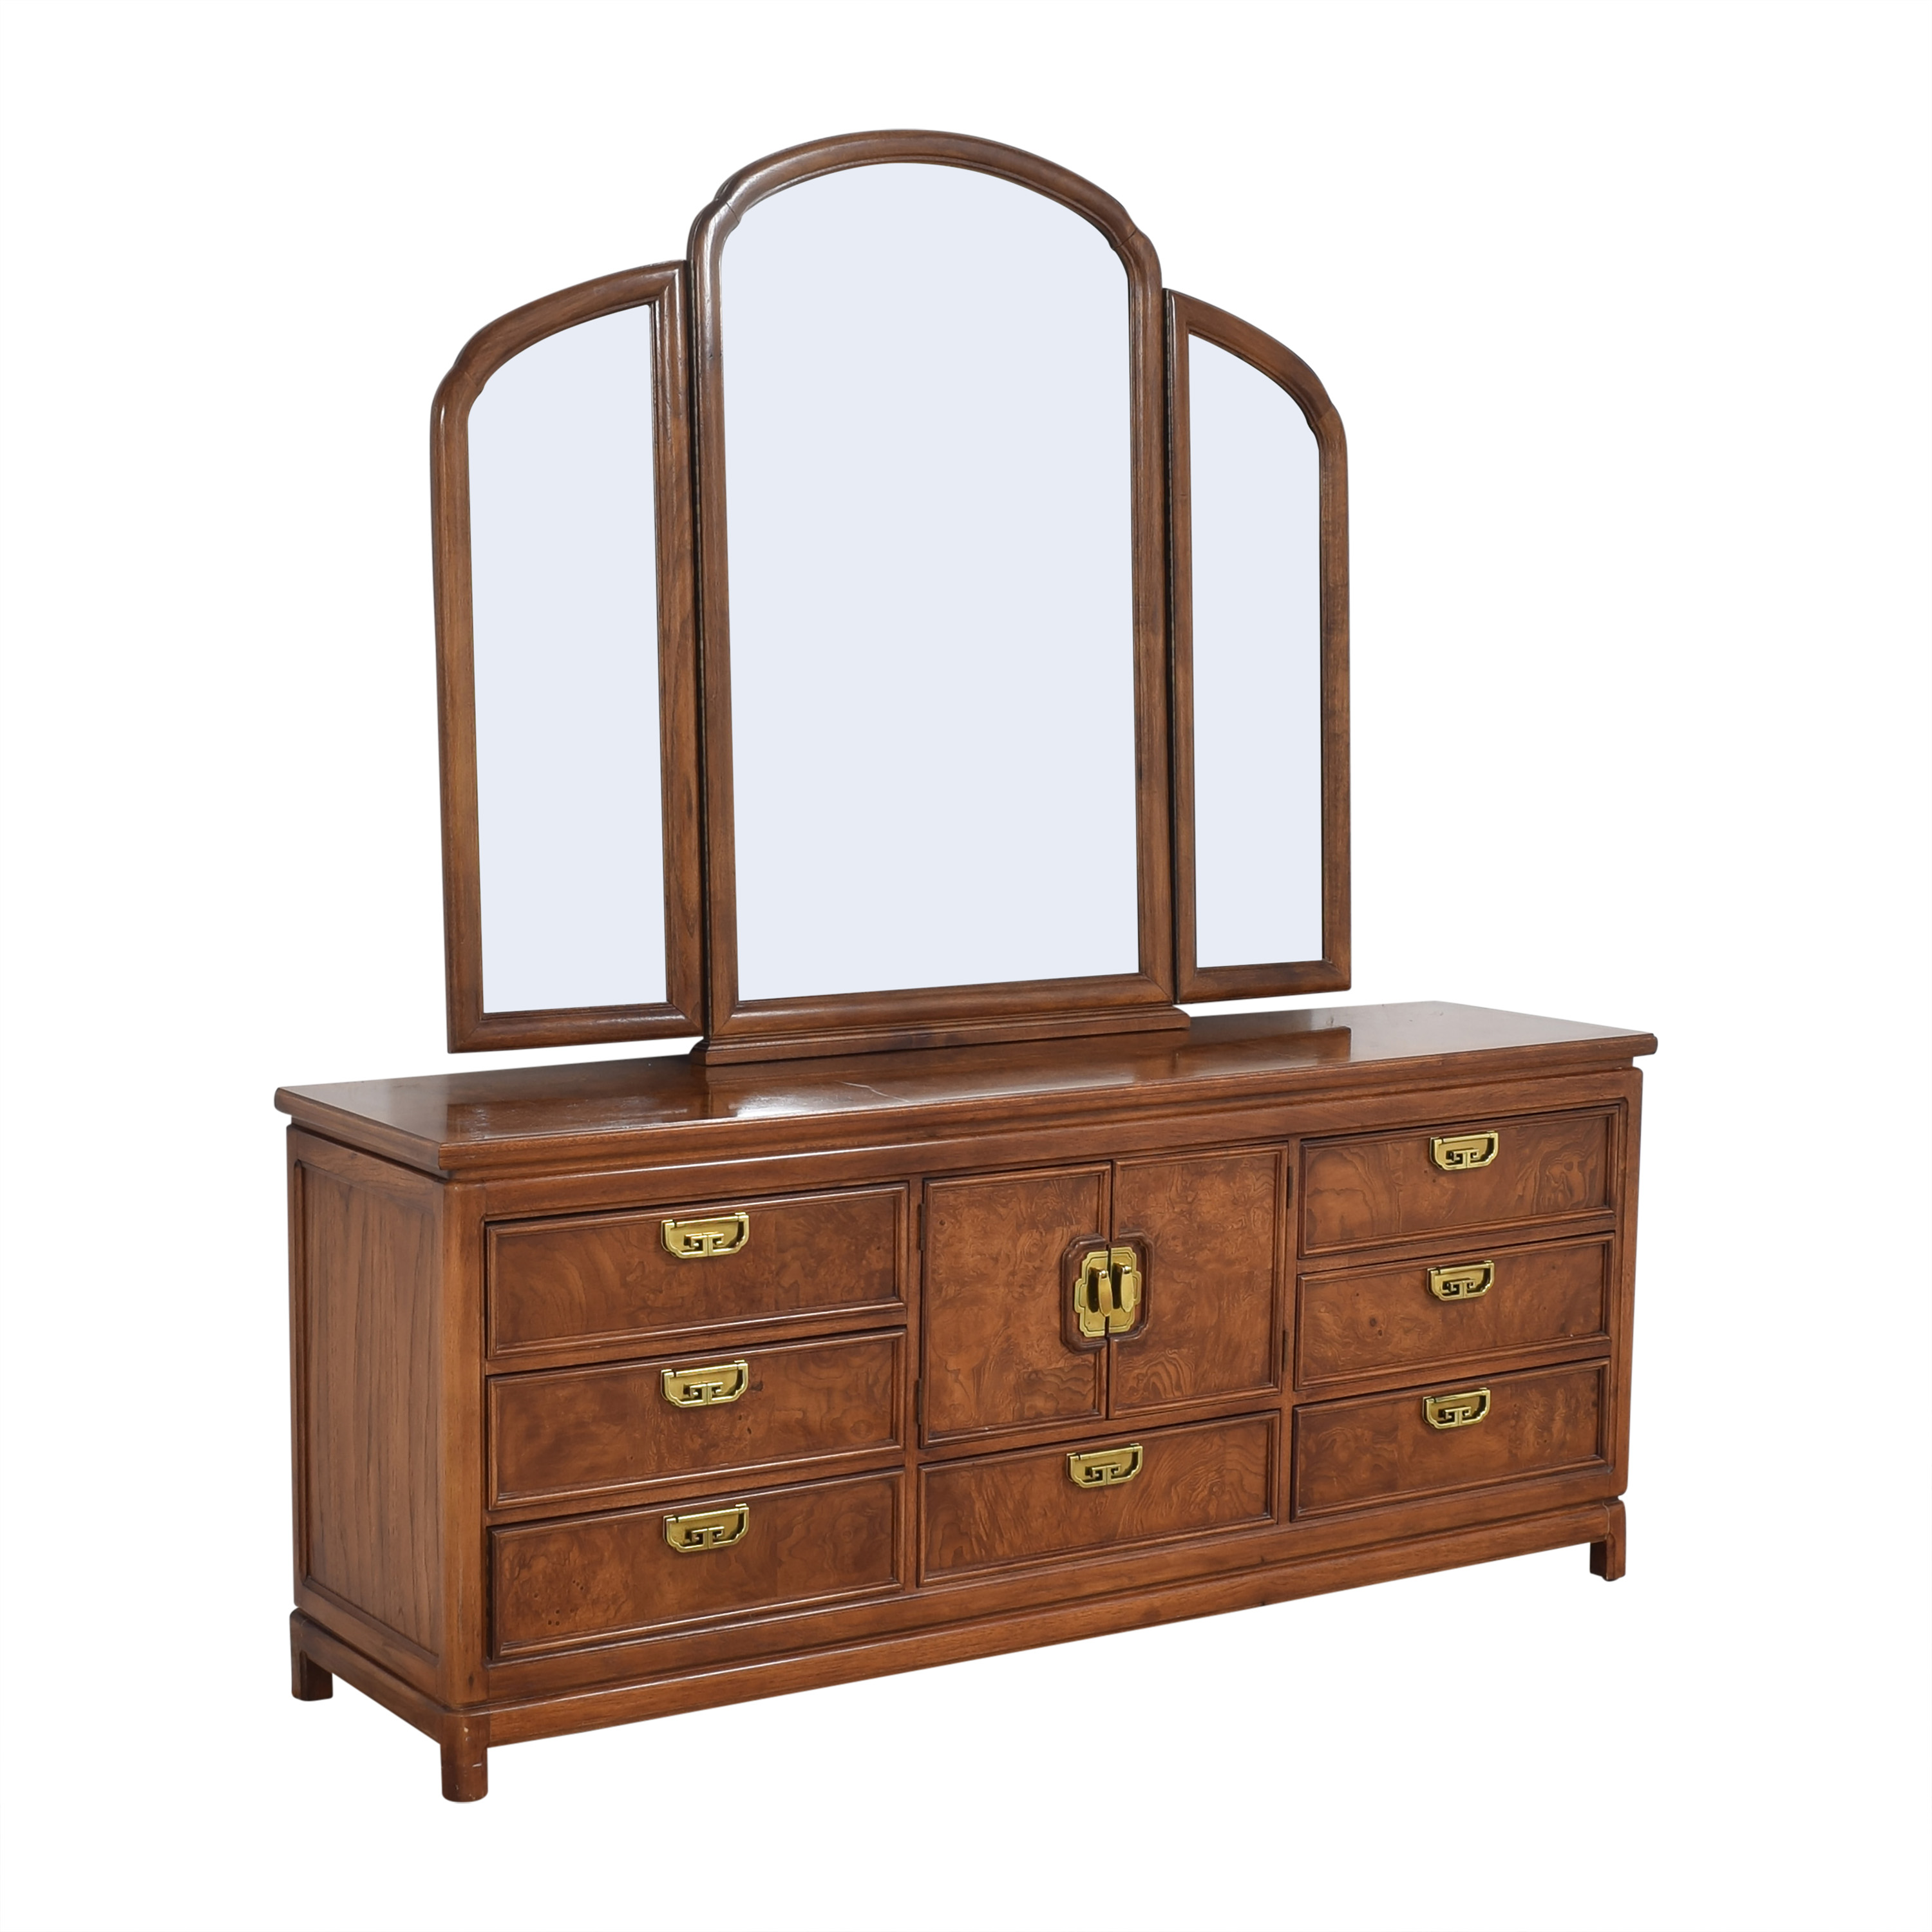 Thomasville Thomasville Mystique Campaign Triple Dresser with Mirror Dressers